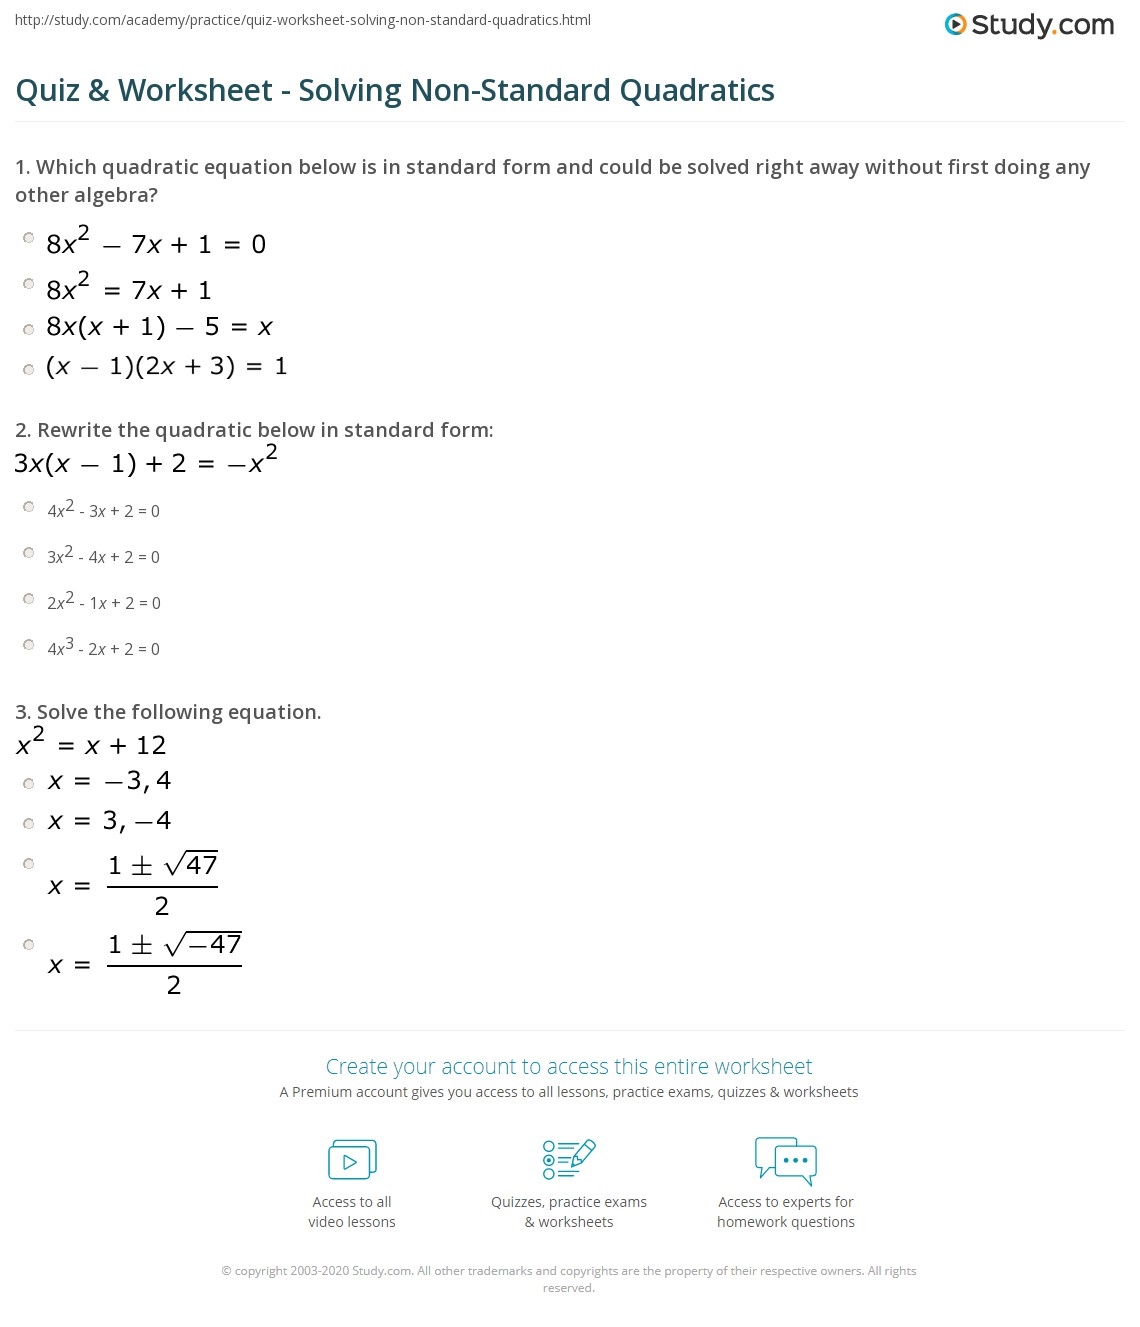 Solving Quadratic Equations Worksheet Answers